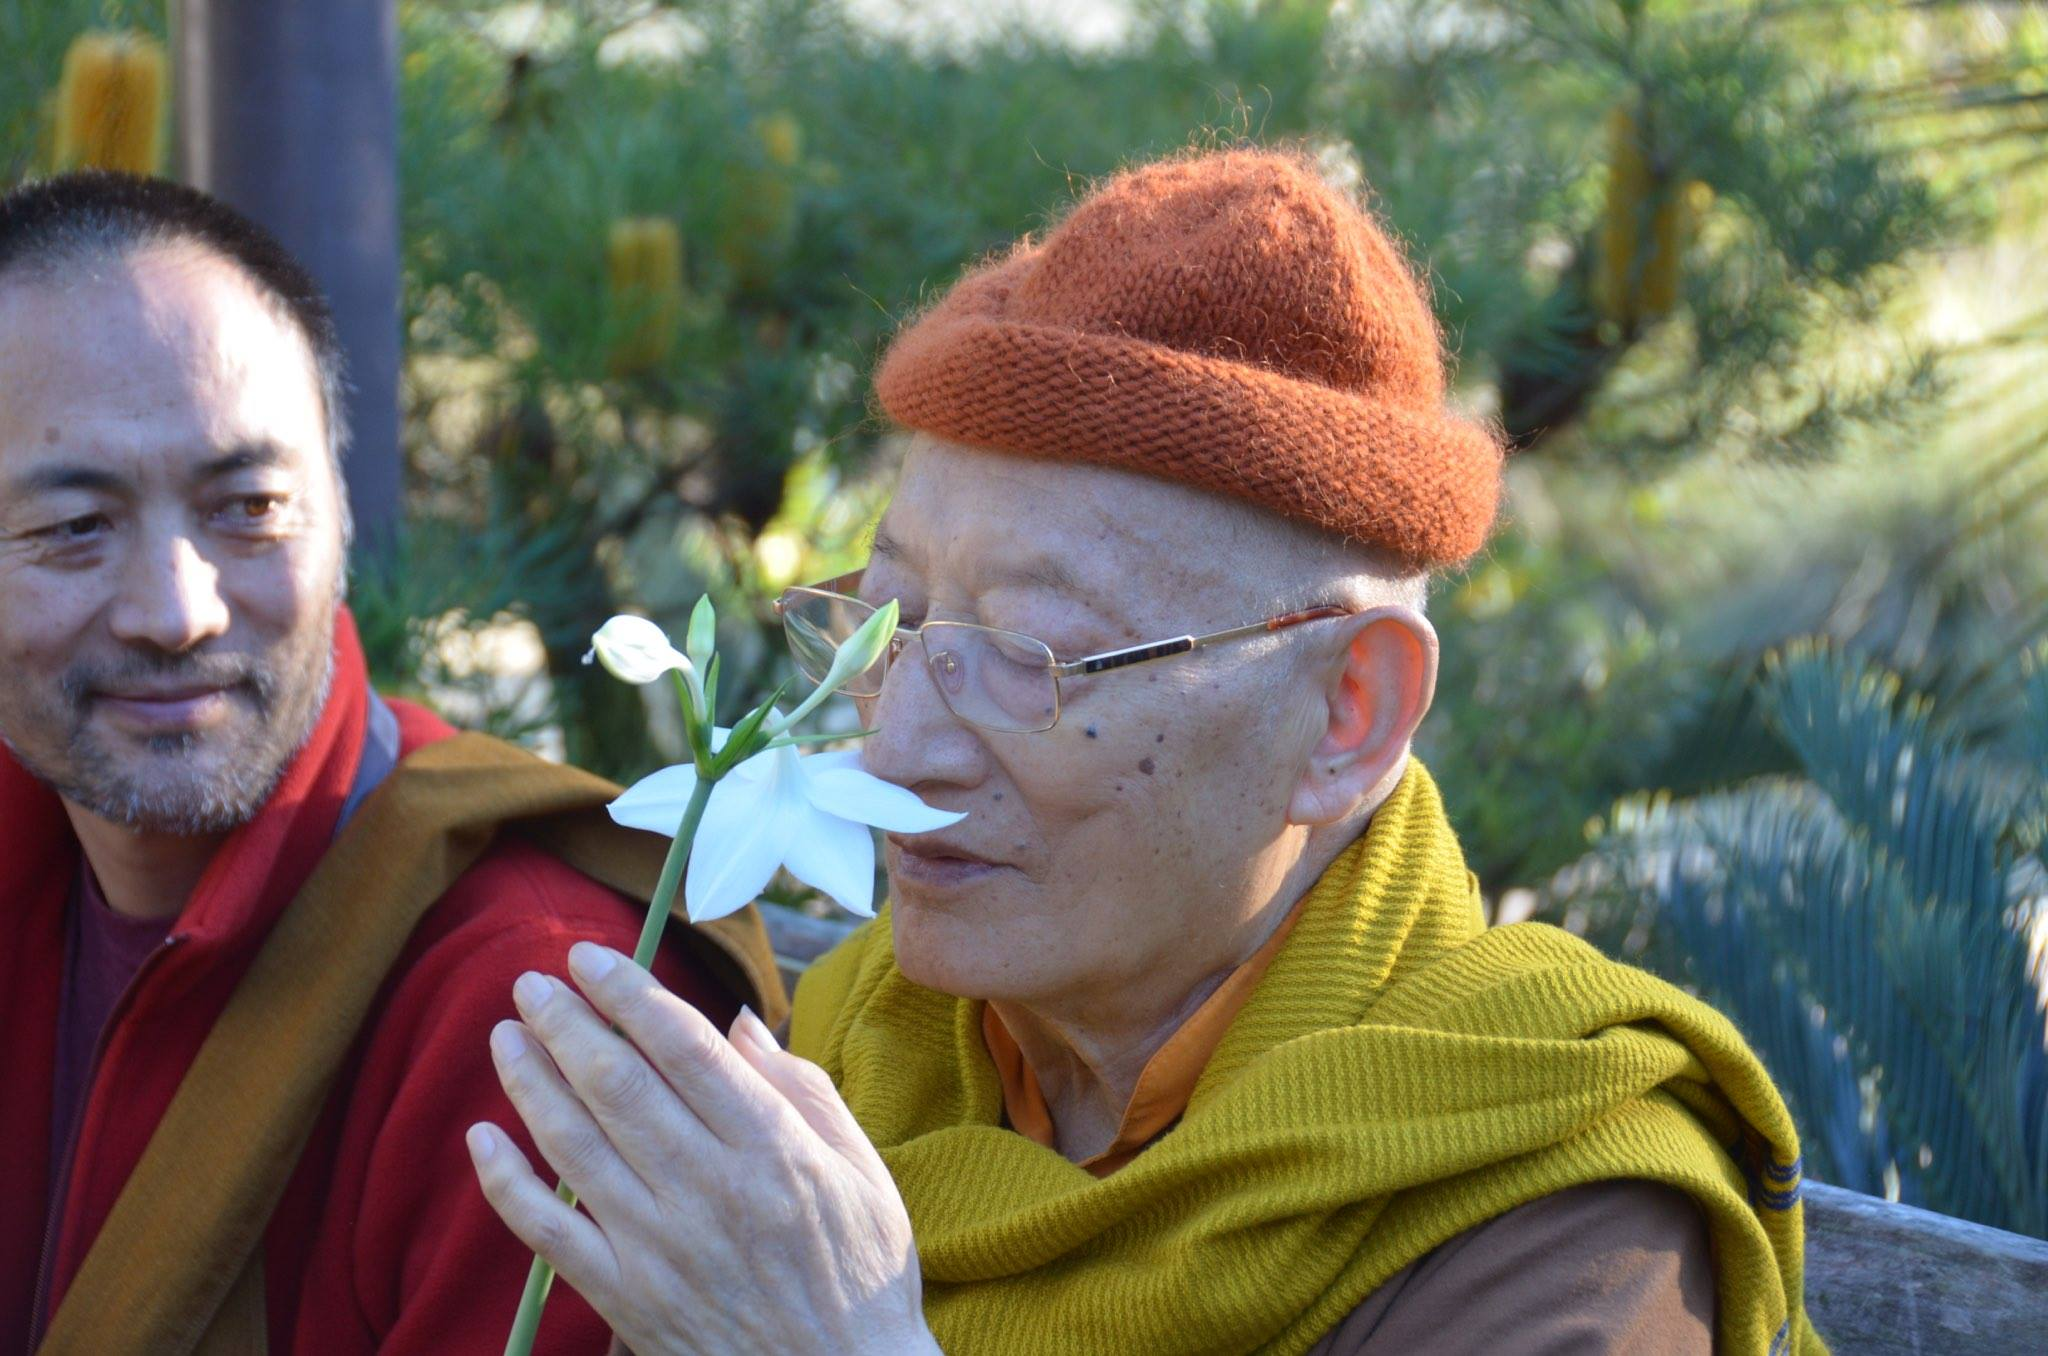 Khenche Rinpoche smelling a flower